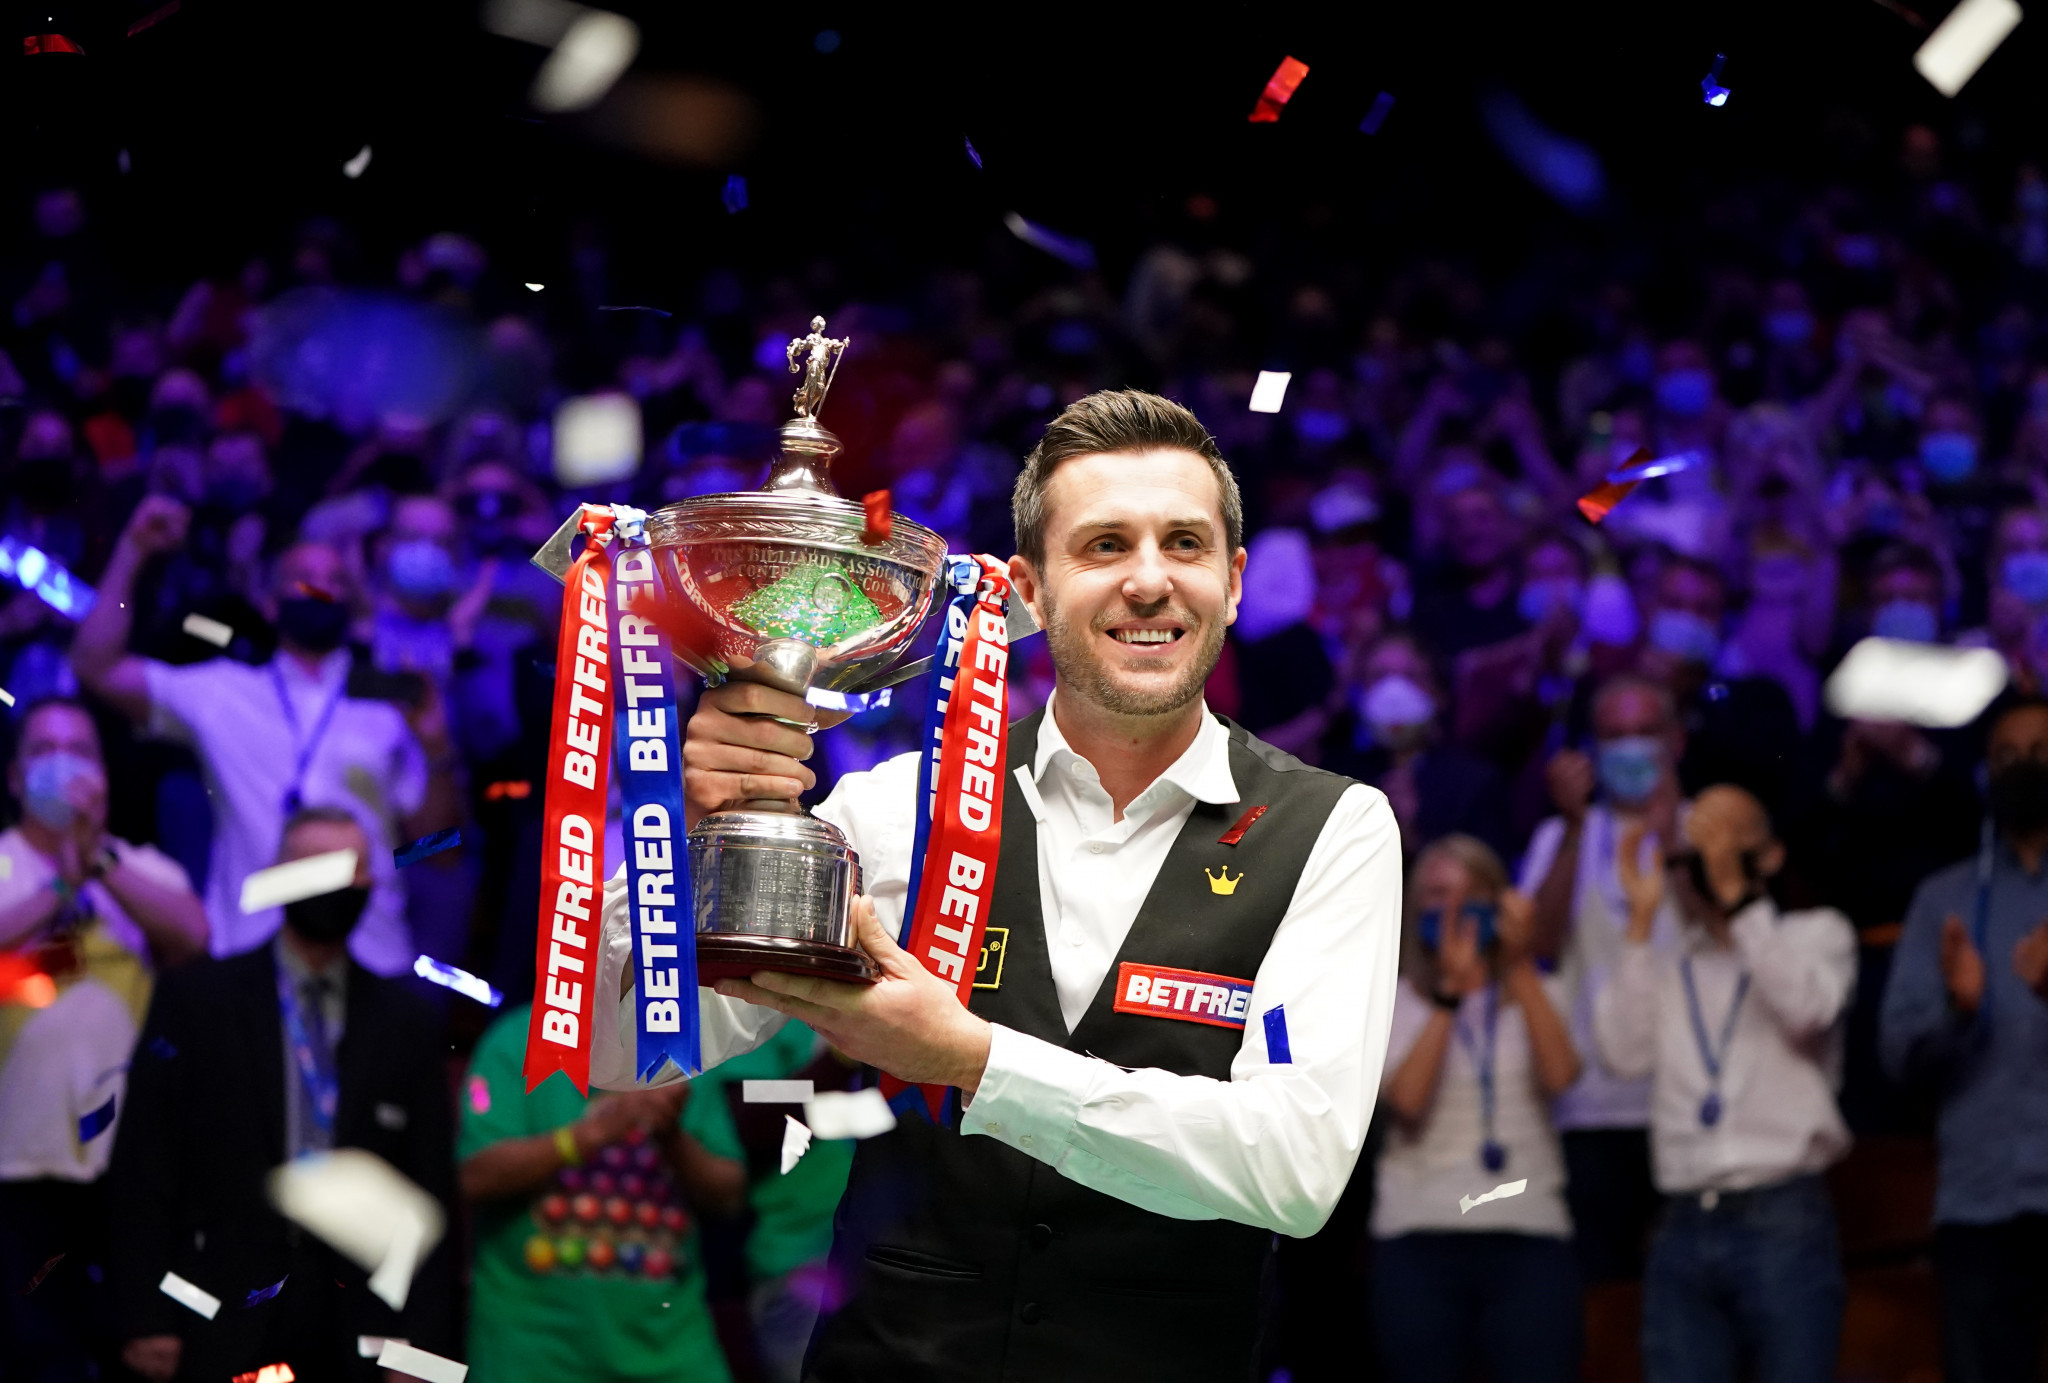 Selby defeats Murphy to win fourth World Snooker Championship